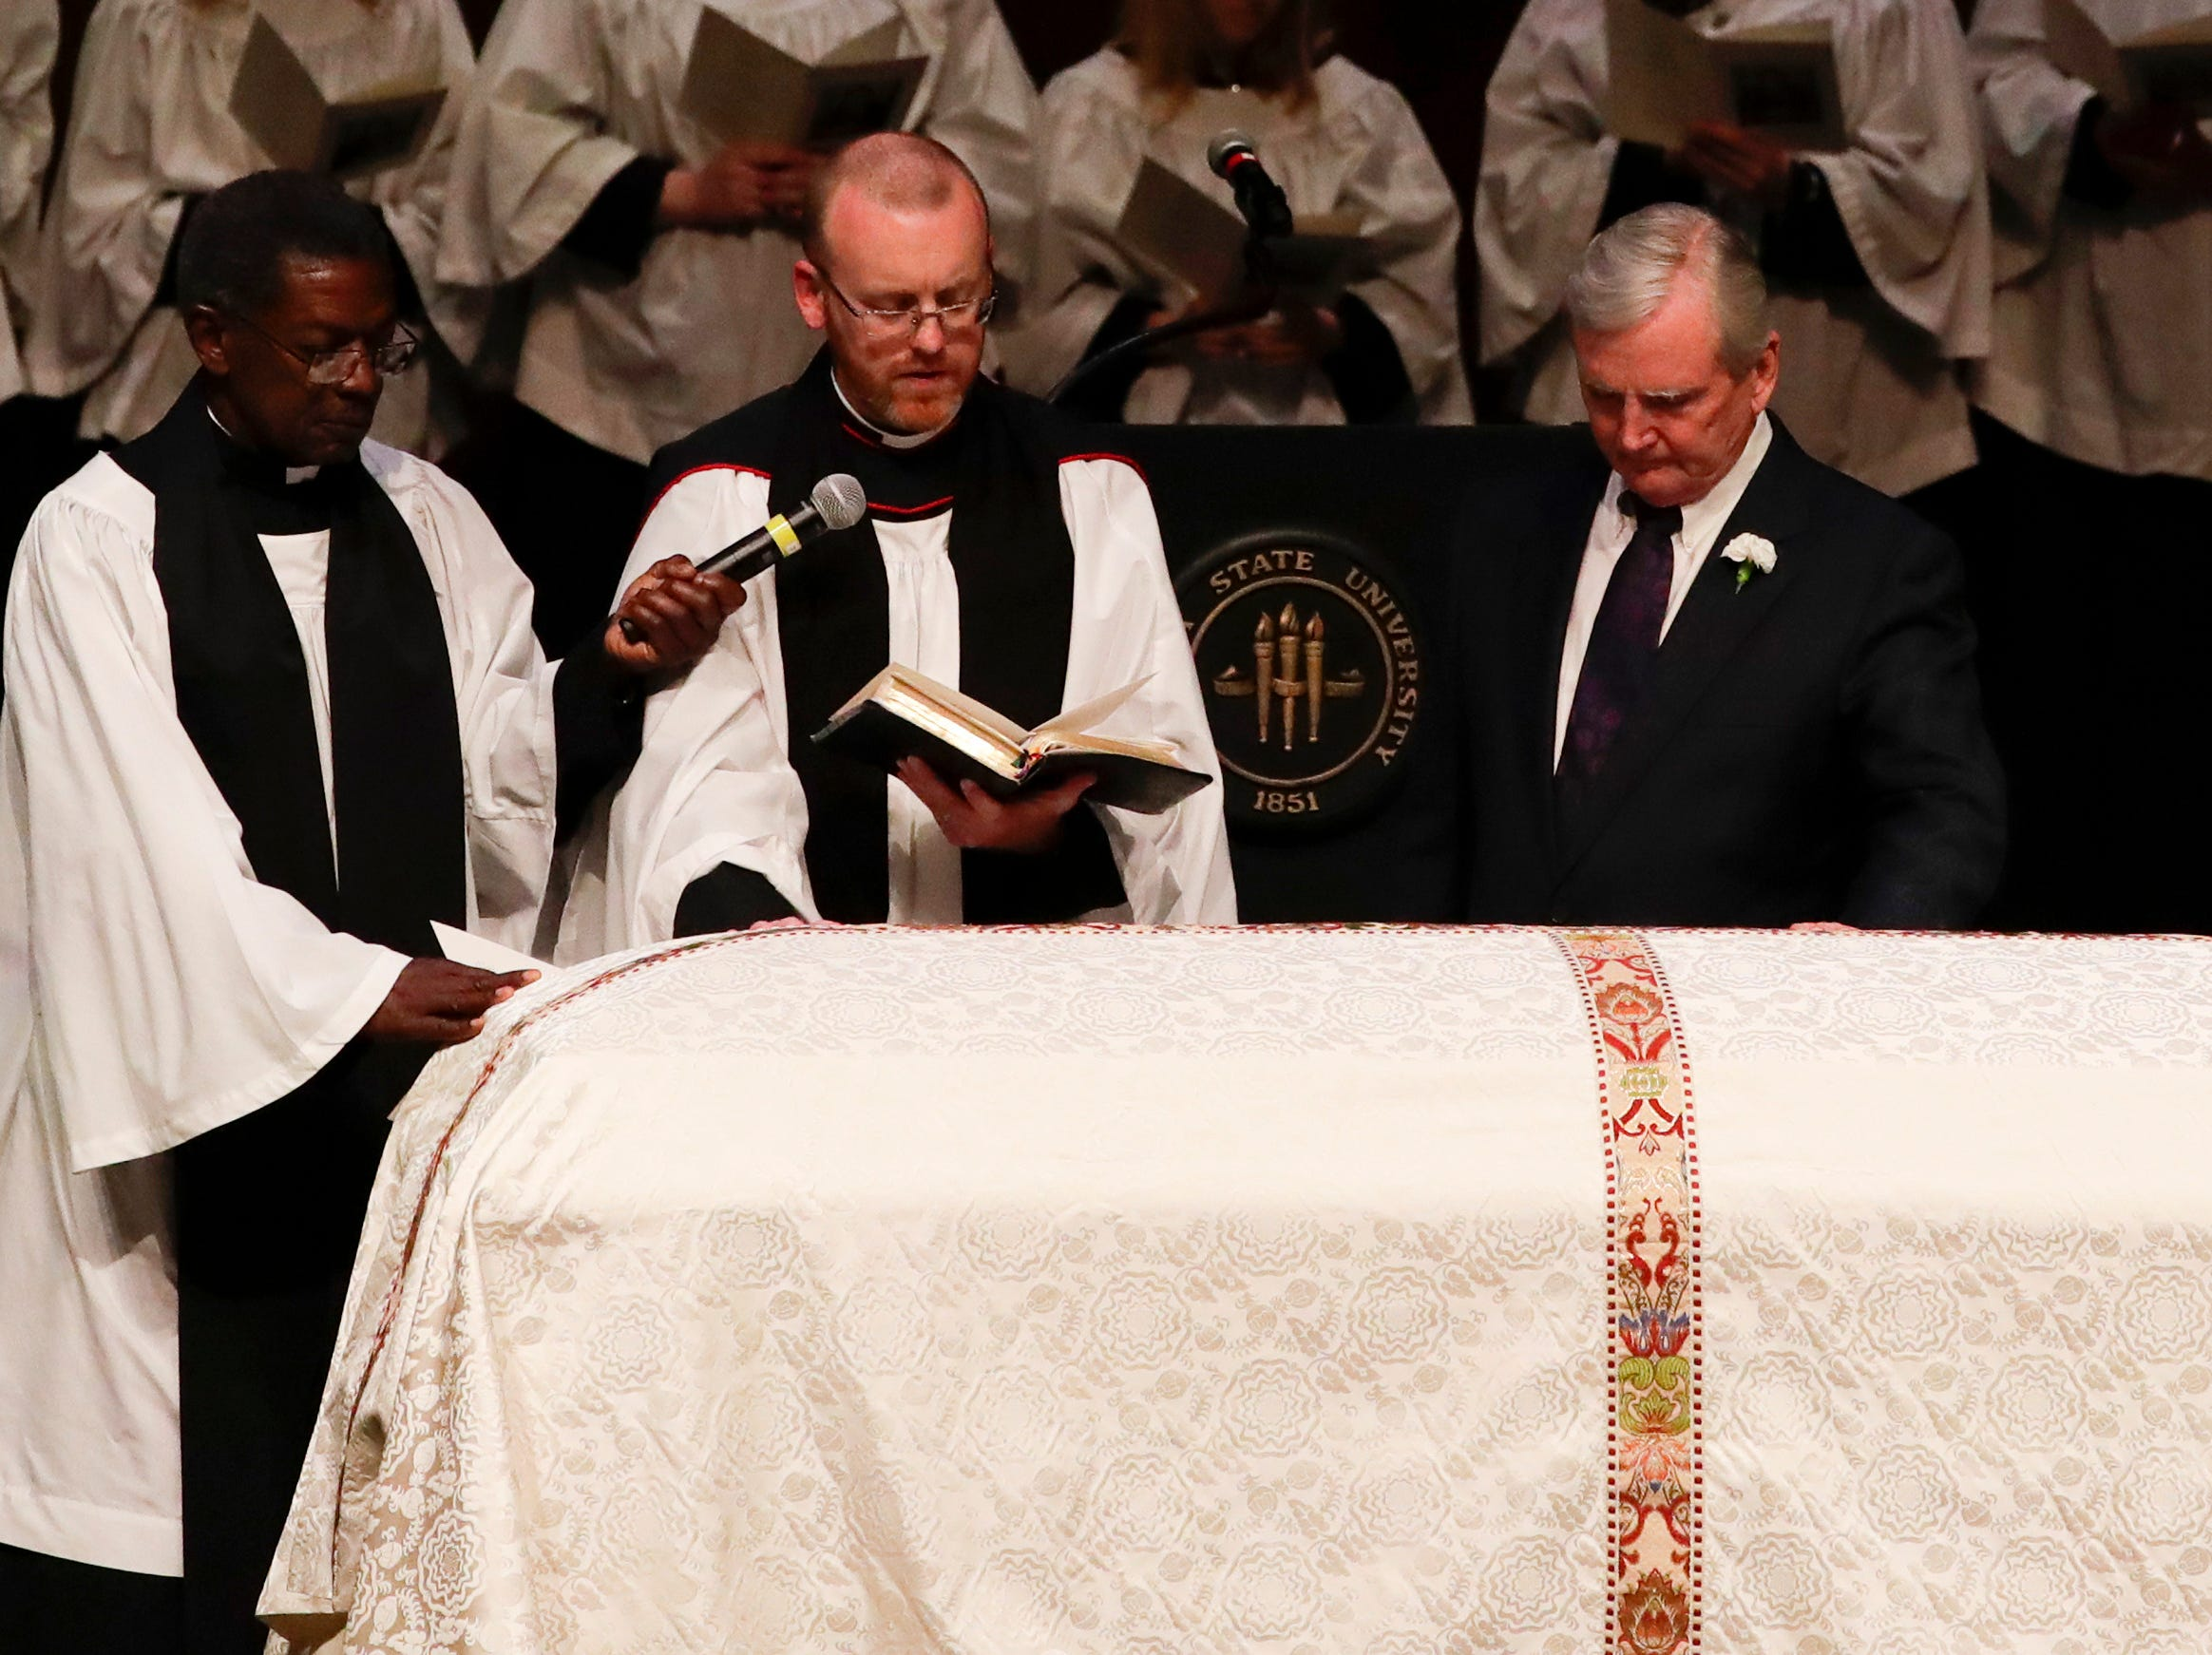 Rev. Joe Bakker, Rev. David Killeen and Bob Williamson pray over the casket of Florida State University President Emeritus T.K. Wetherell during his funeral service held at Ruby Diamond Concert Hall Friday, Dec. 21, 2018.